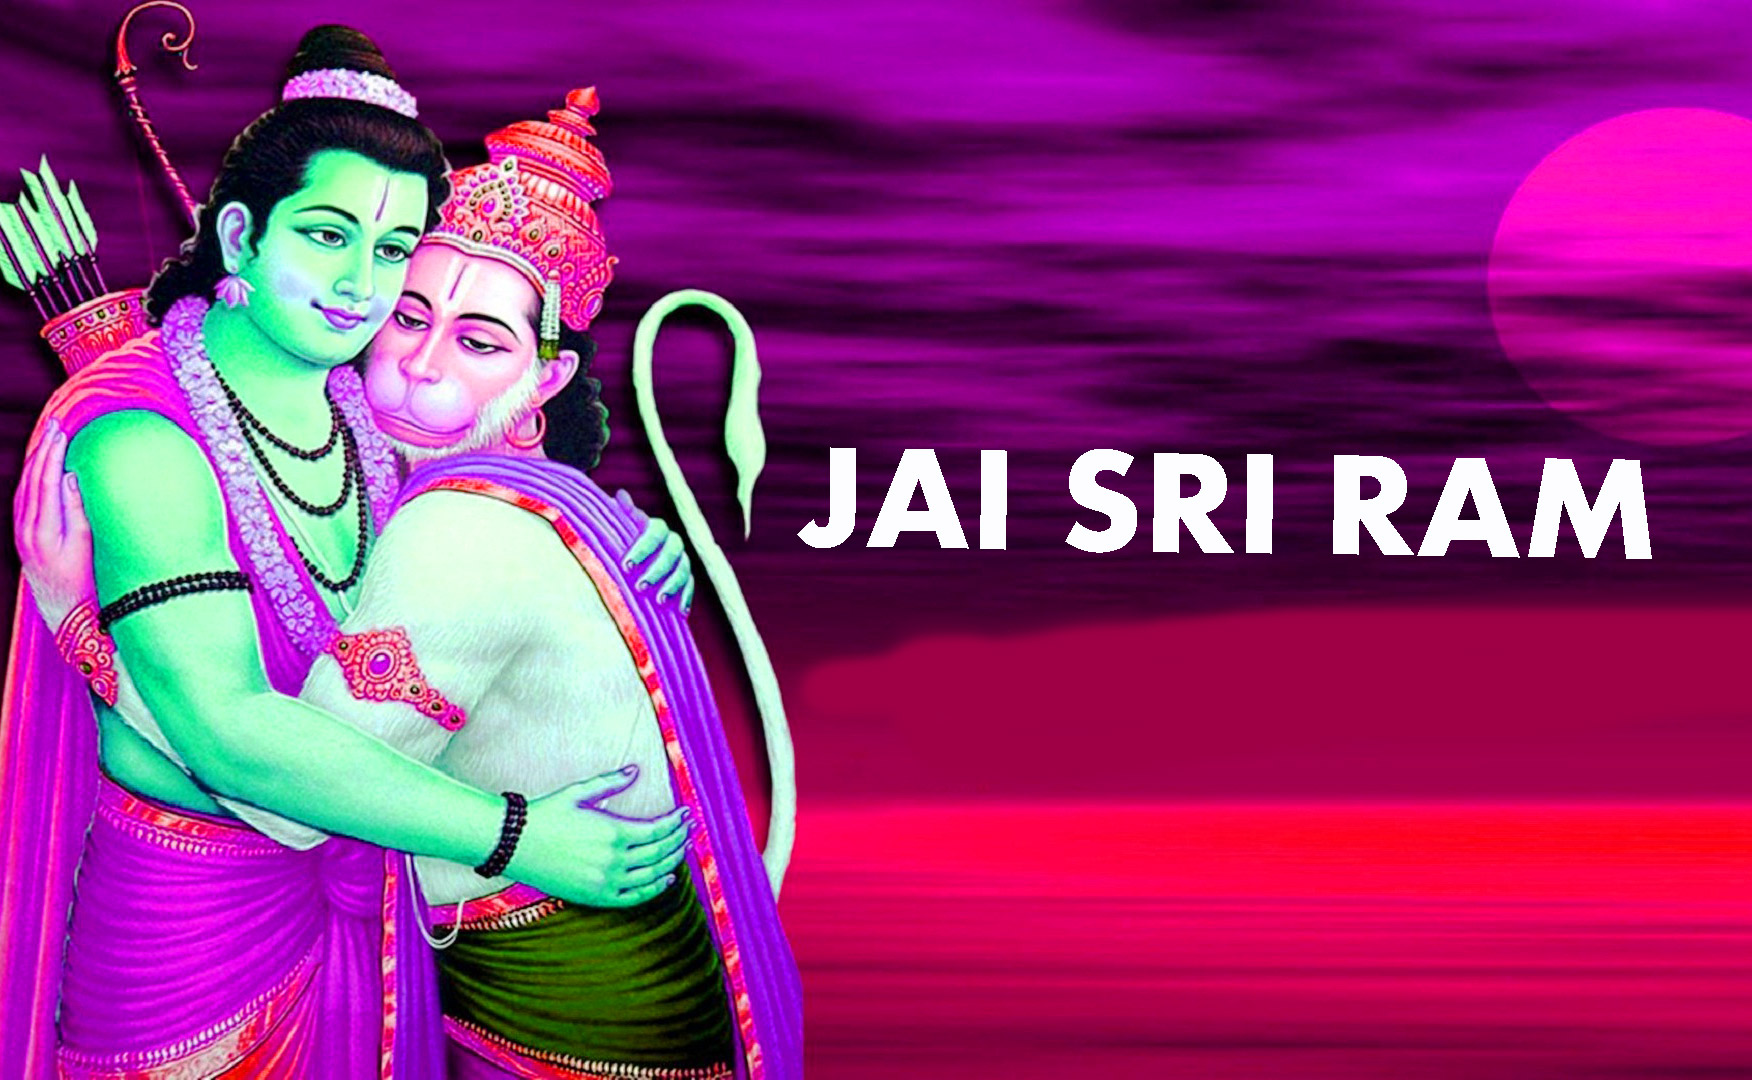 JAI SHRI RAM IMAGES WALLPAPER PICS FOR WHATSAPP